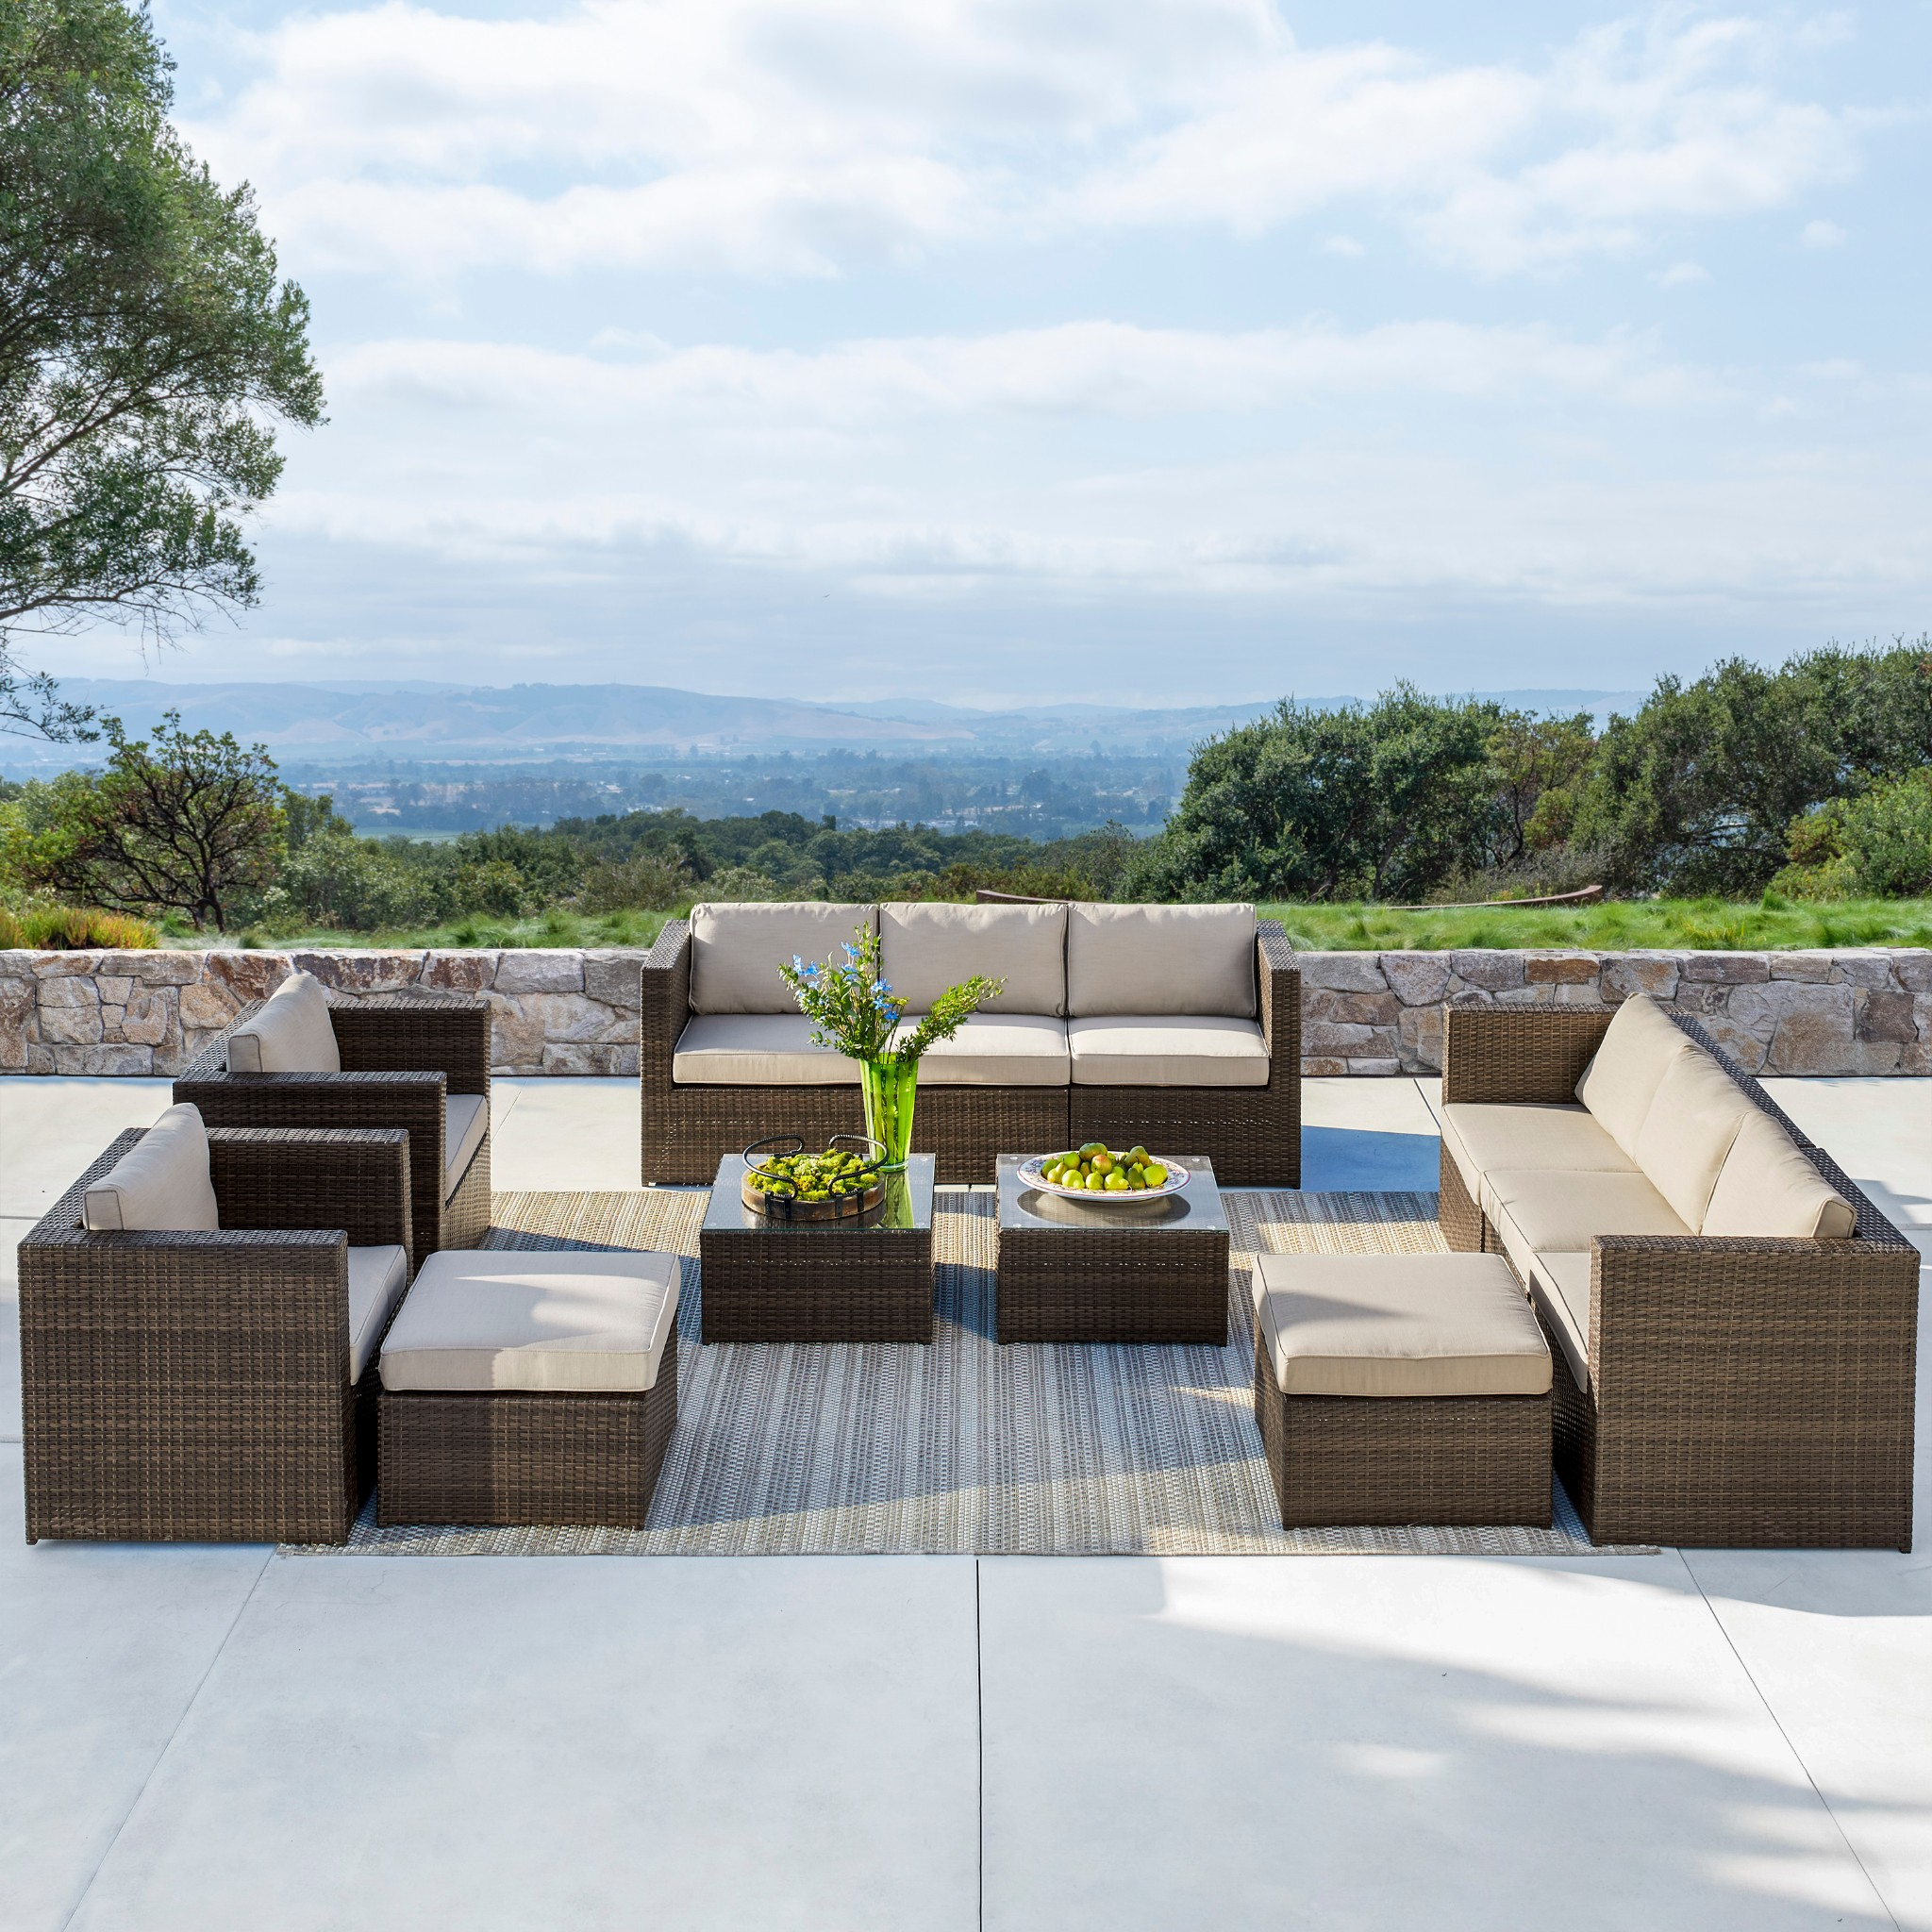 Details about Outdoor Furniture 12 Pieces Patio Sectional Wicker Rattan  Sofa set by Supernova